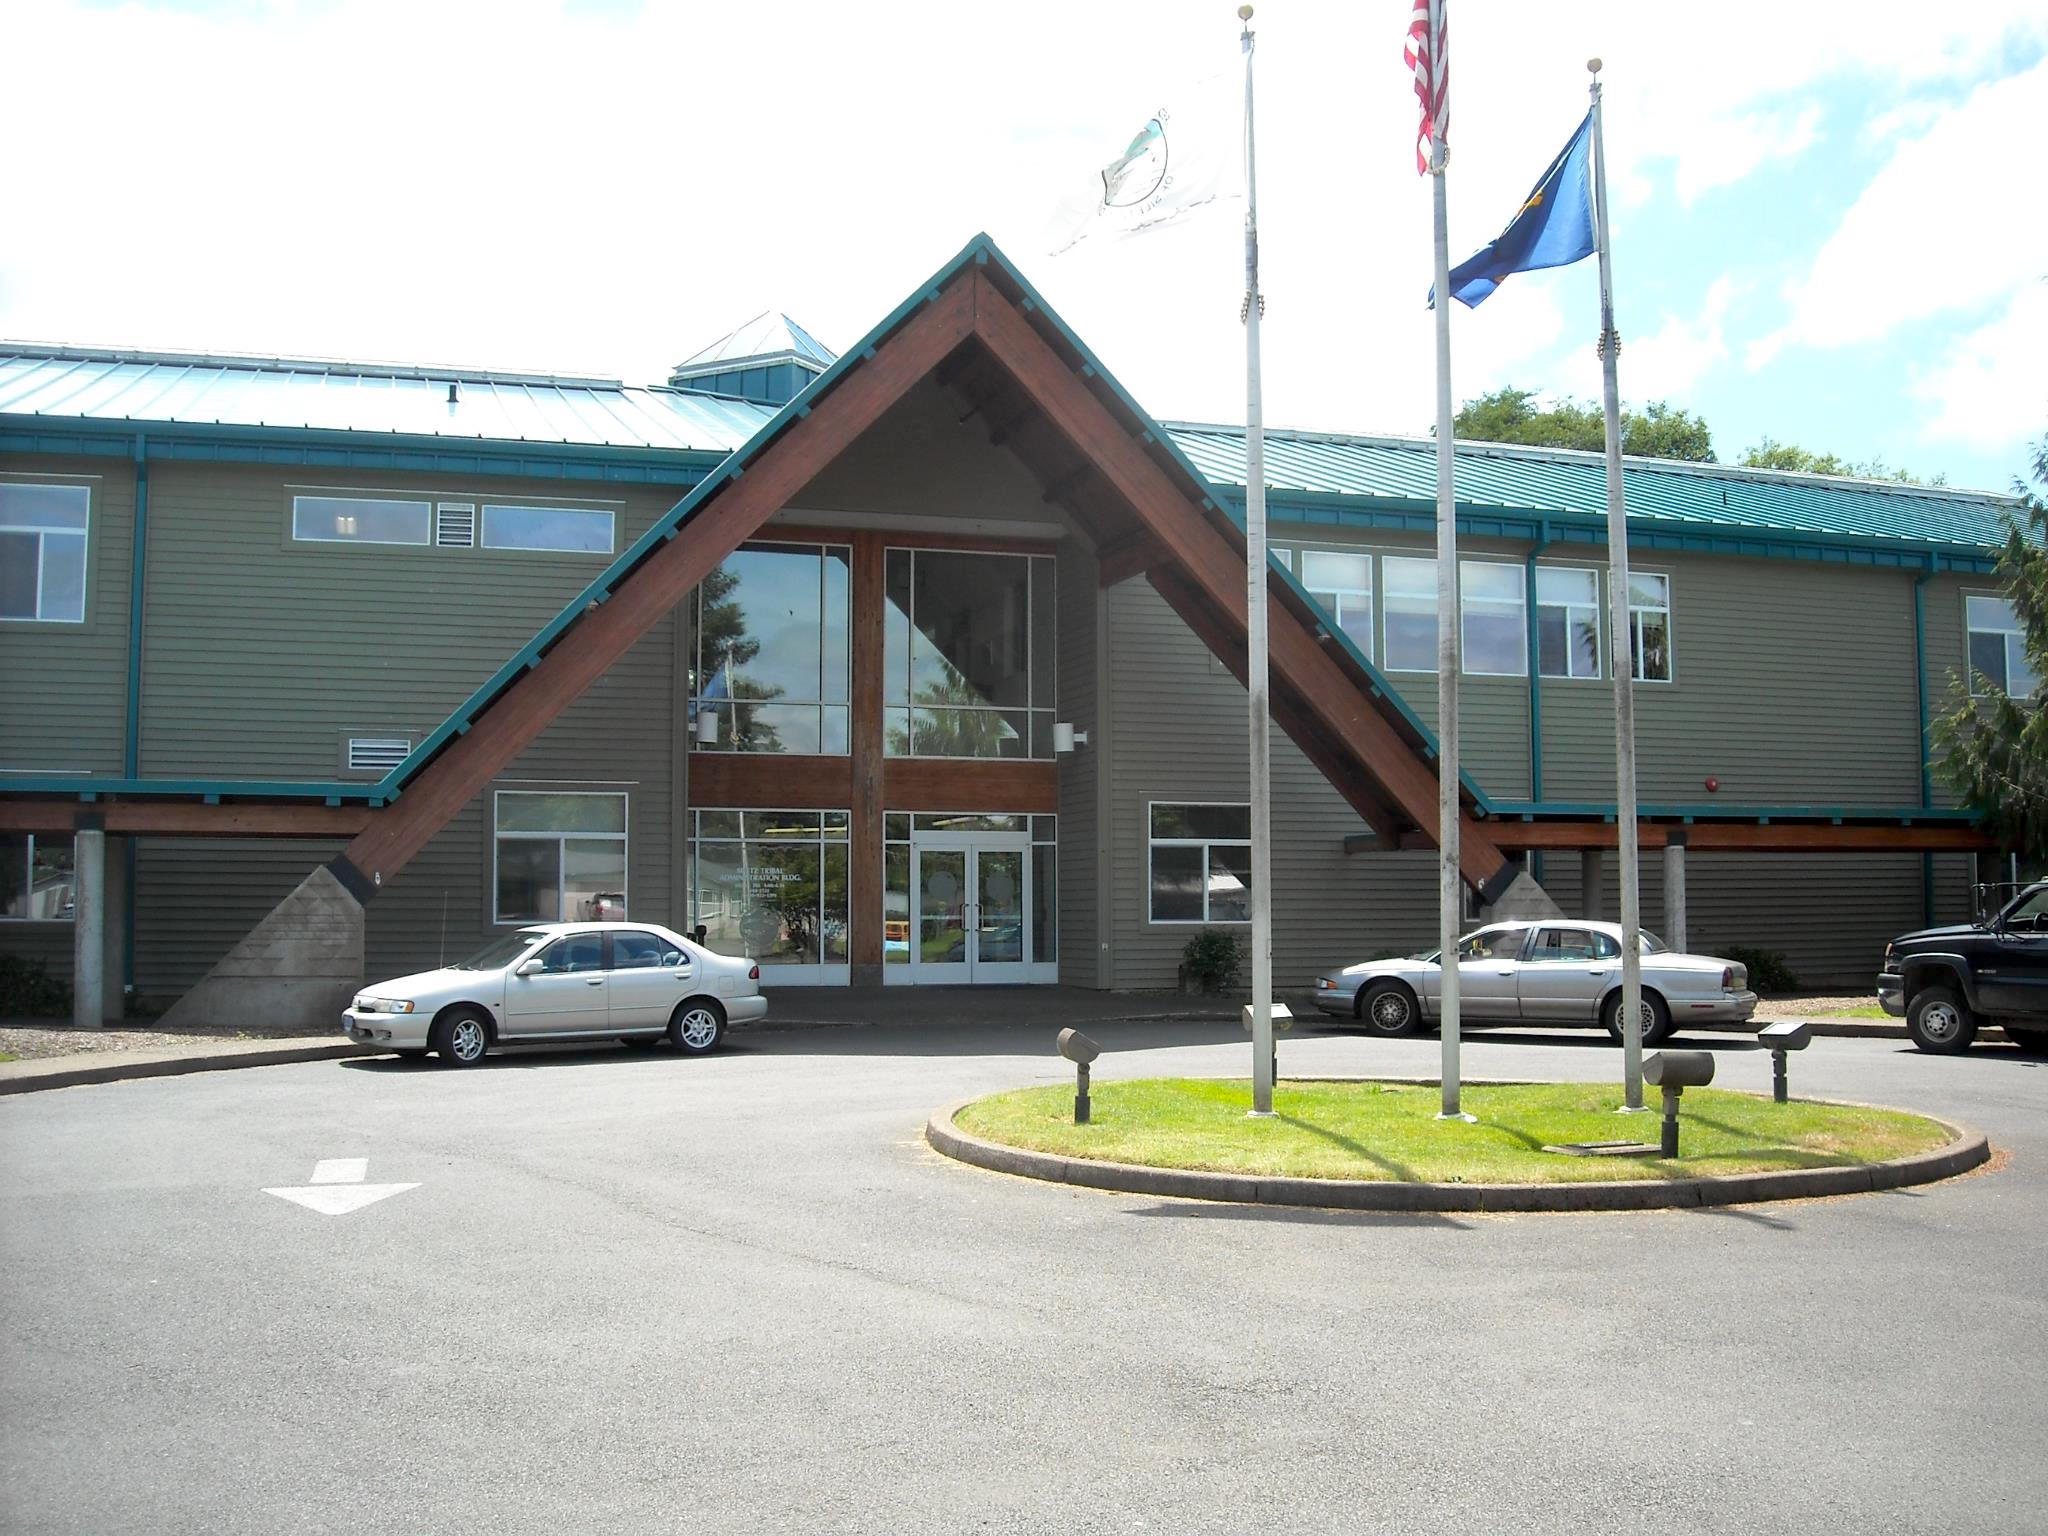 Confederated Tribes of Siletz Indians report outcome of election